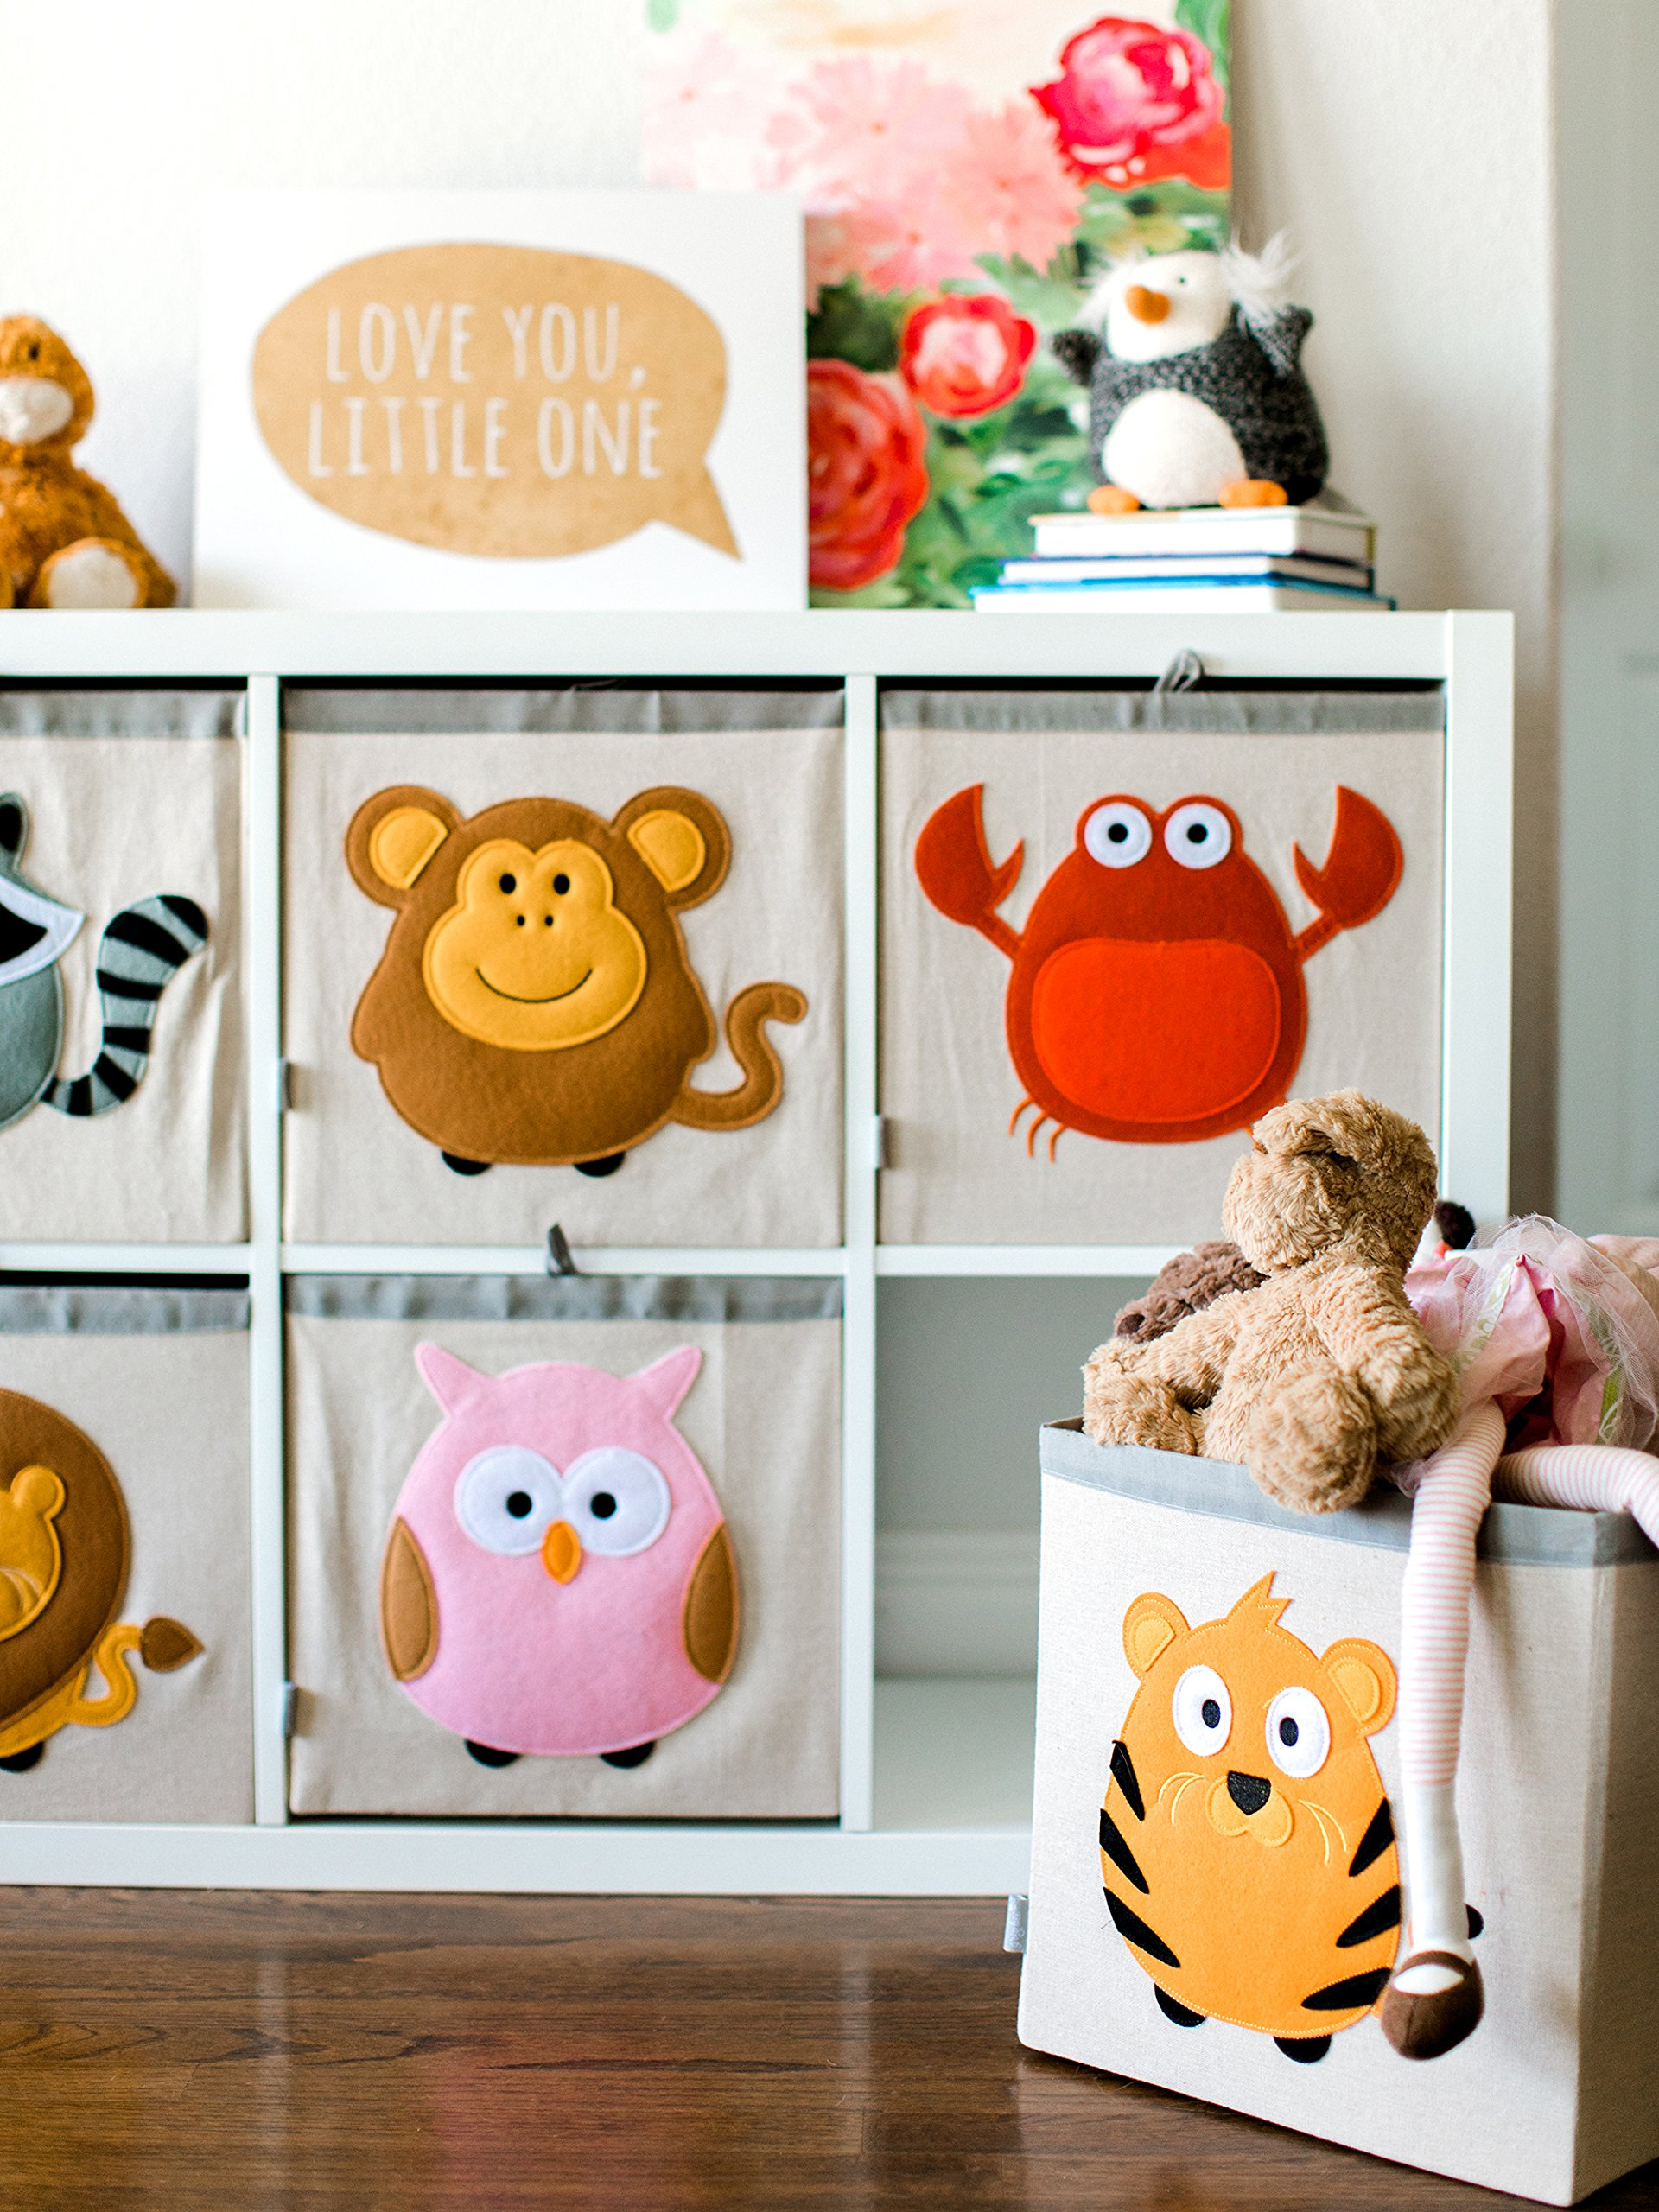 Large Collapsible Cube Storage Bin :: 100% Jute Canvas Toy Basket for Baby Items, Kids' Clothes & Much More, 13'' x 13'' Square, with Adorable Felt Animal Design, Monkey, Brown by Grey Bee by Grey Bee (Image #2)